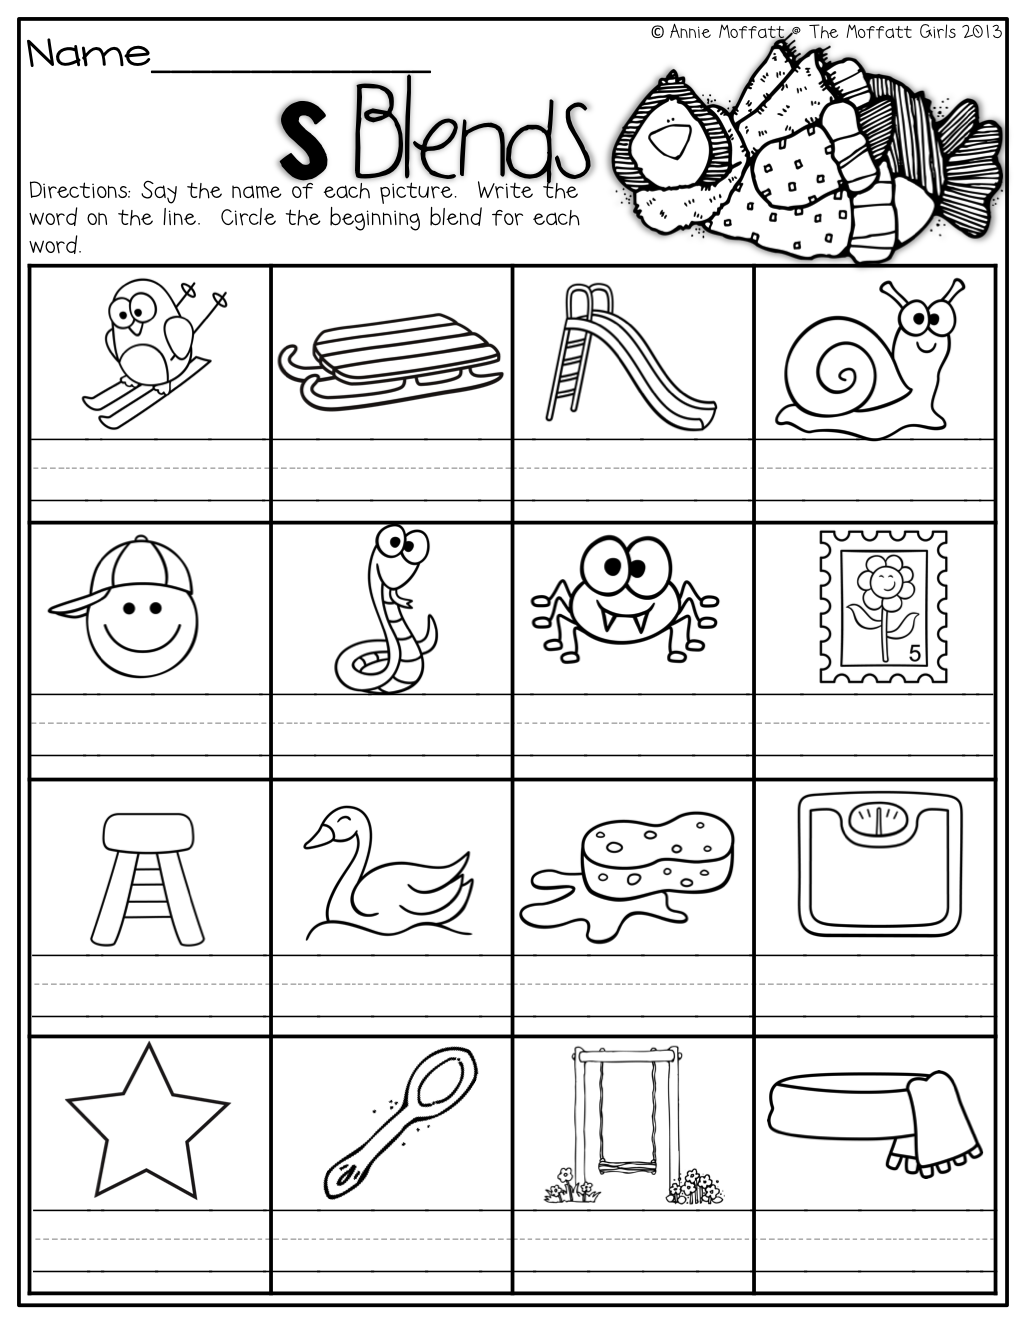 worksheet S Blends Worksheet s blends word work pinterest phonics kindergarten and school blends